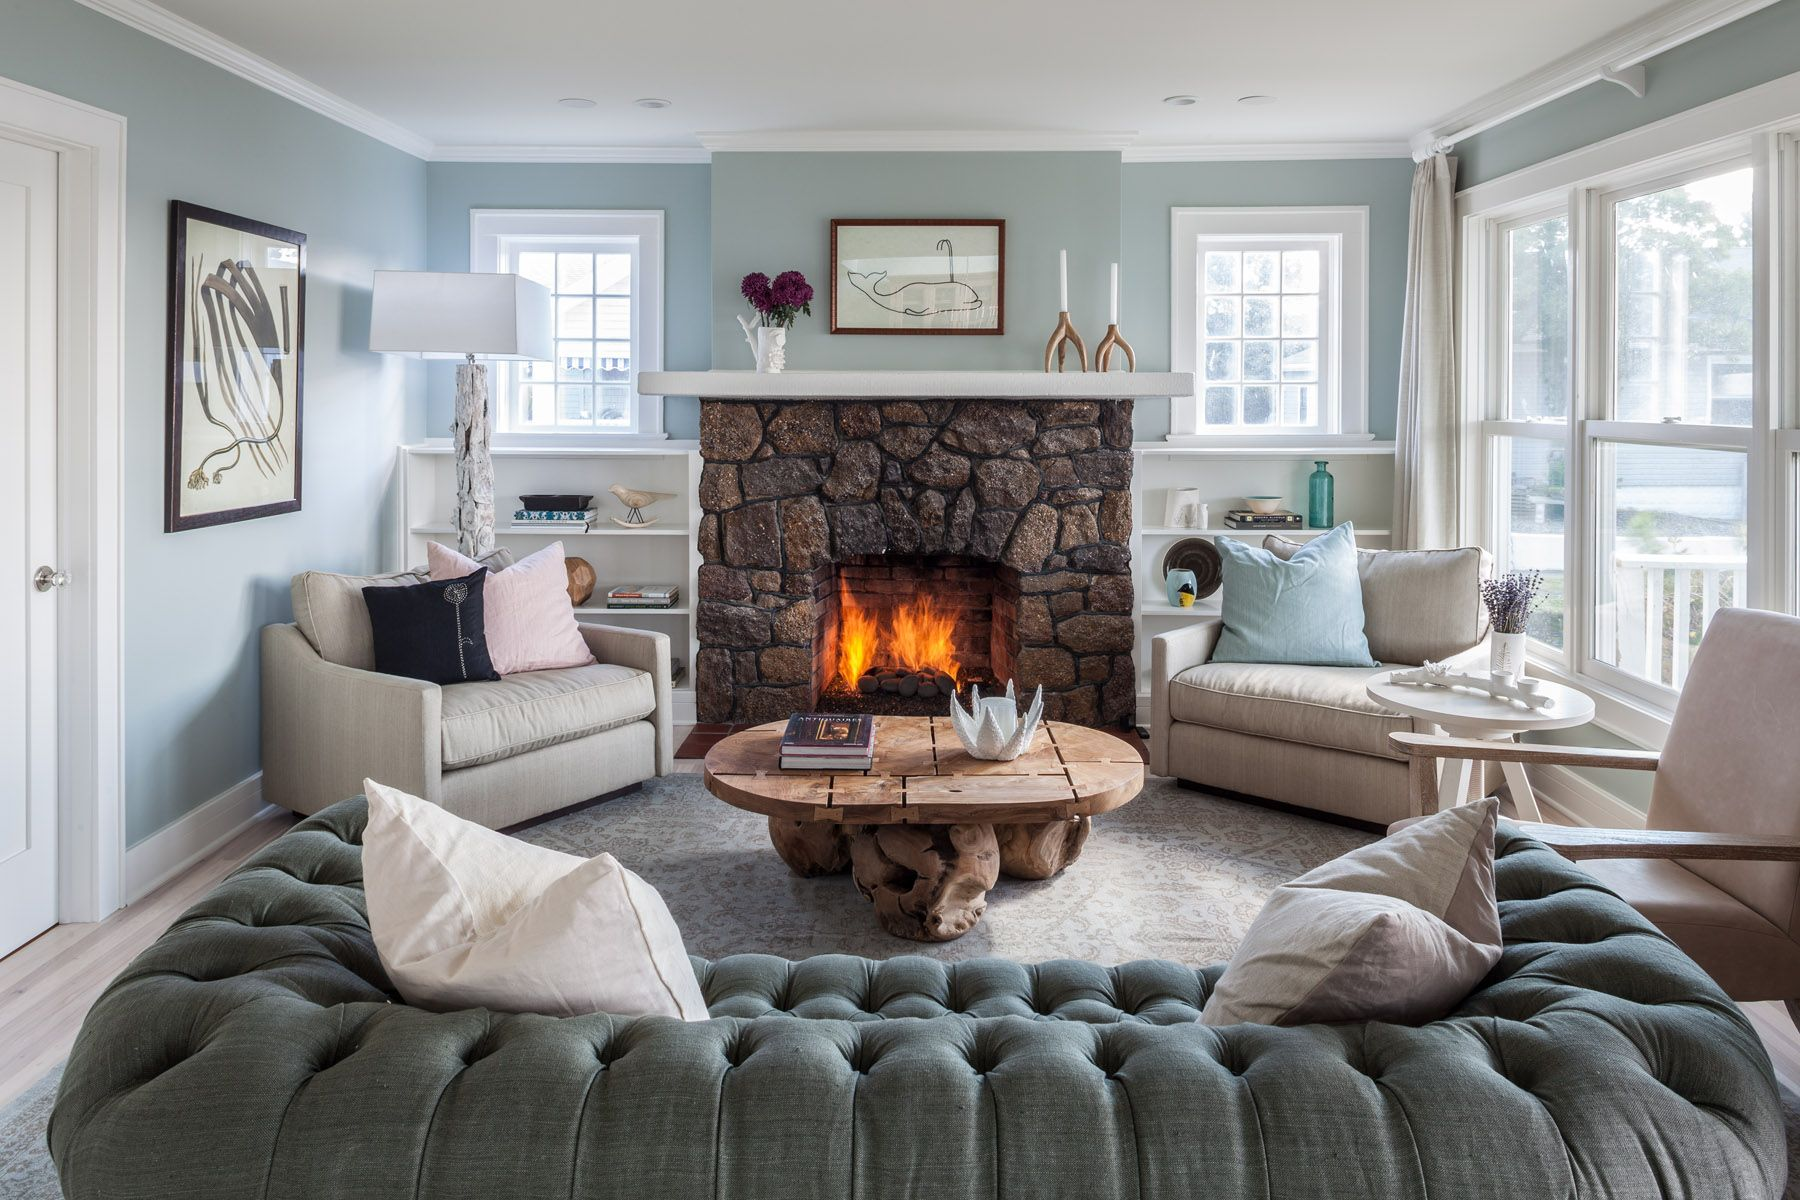 Top NYC Interior Design Firm Creates Stunning Home In The Hamptons Interior  Design   Family Living